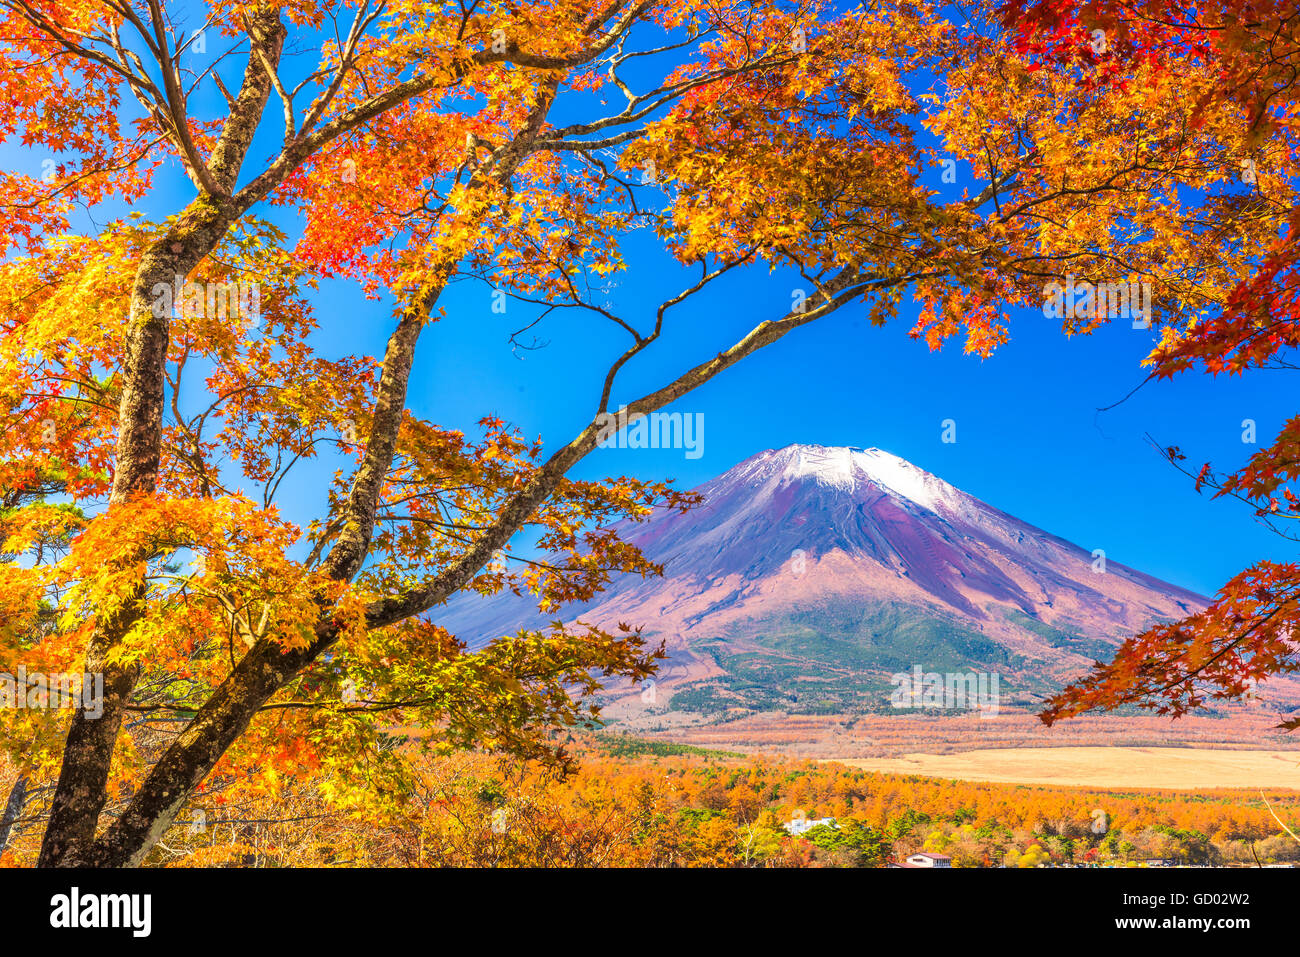 Mt. Fuji, Japan from Yamanaka Lake in autumn. - Stock Image